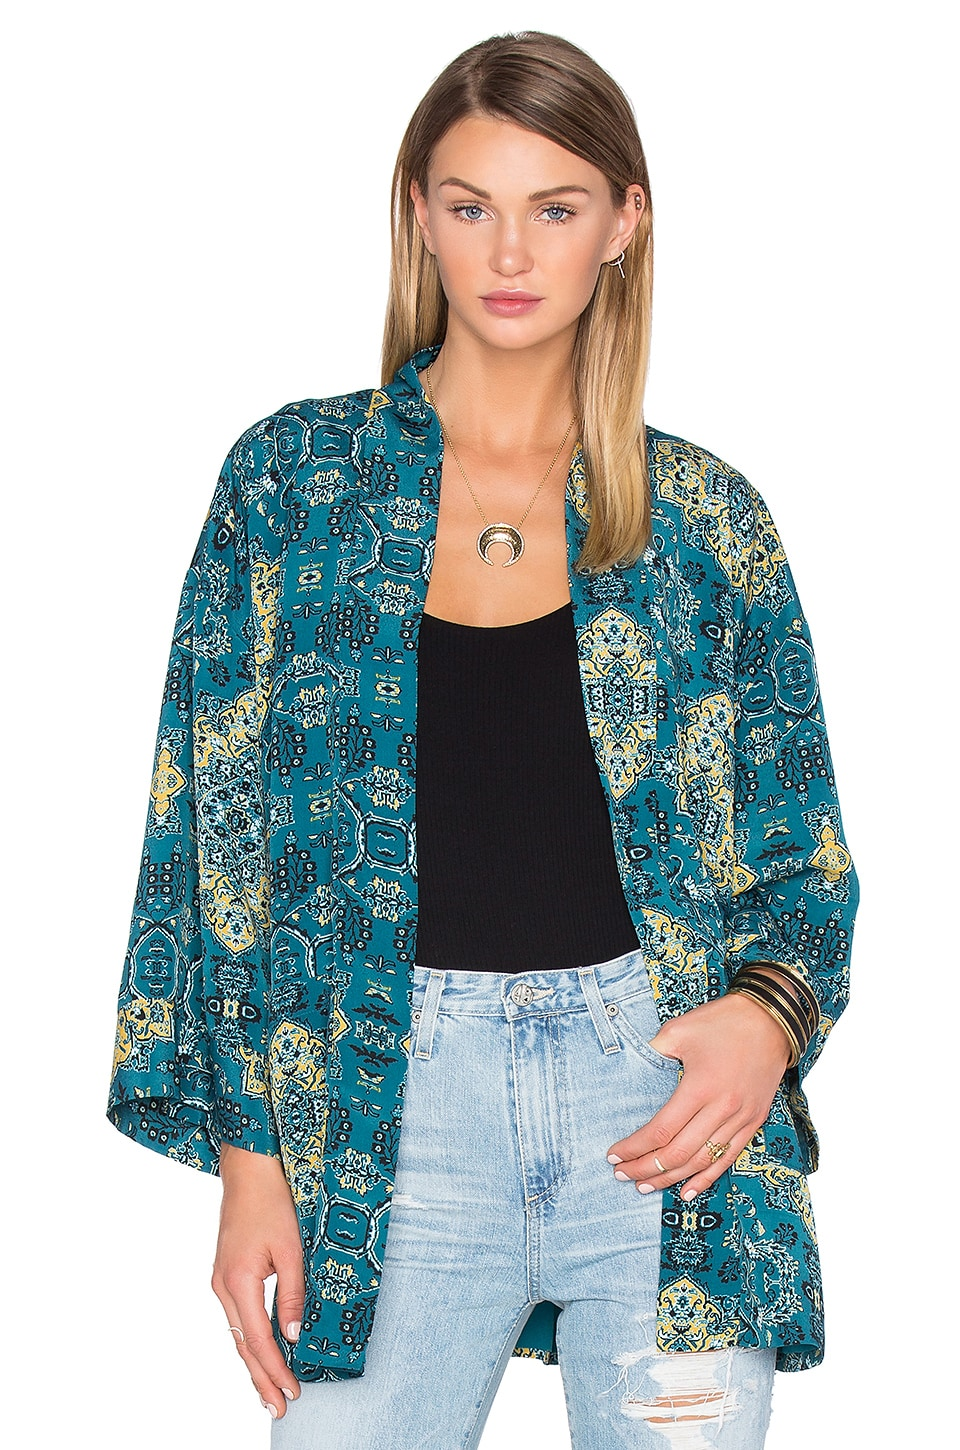 x REVOLVE Kora Bed Jacket by House of Harlow 1960